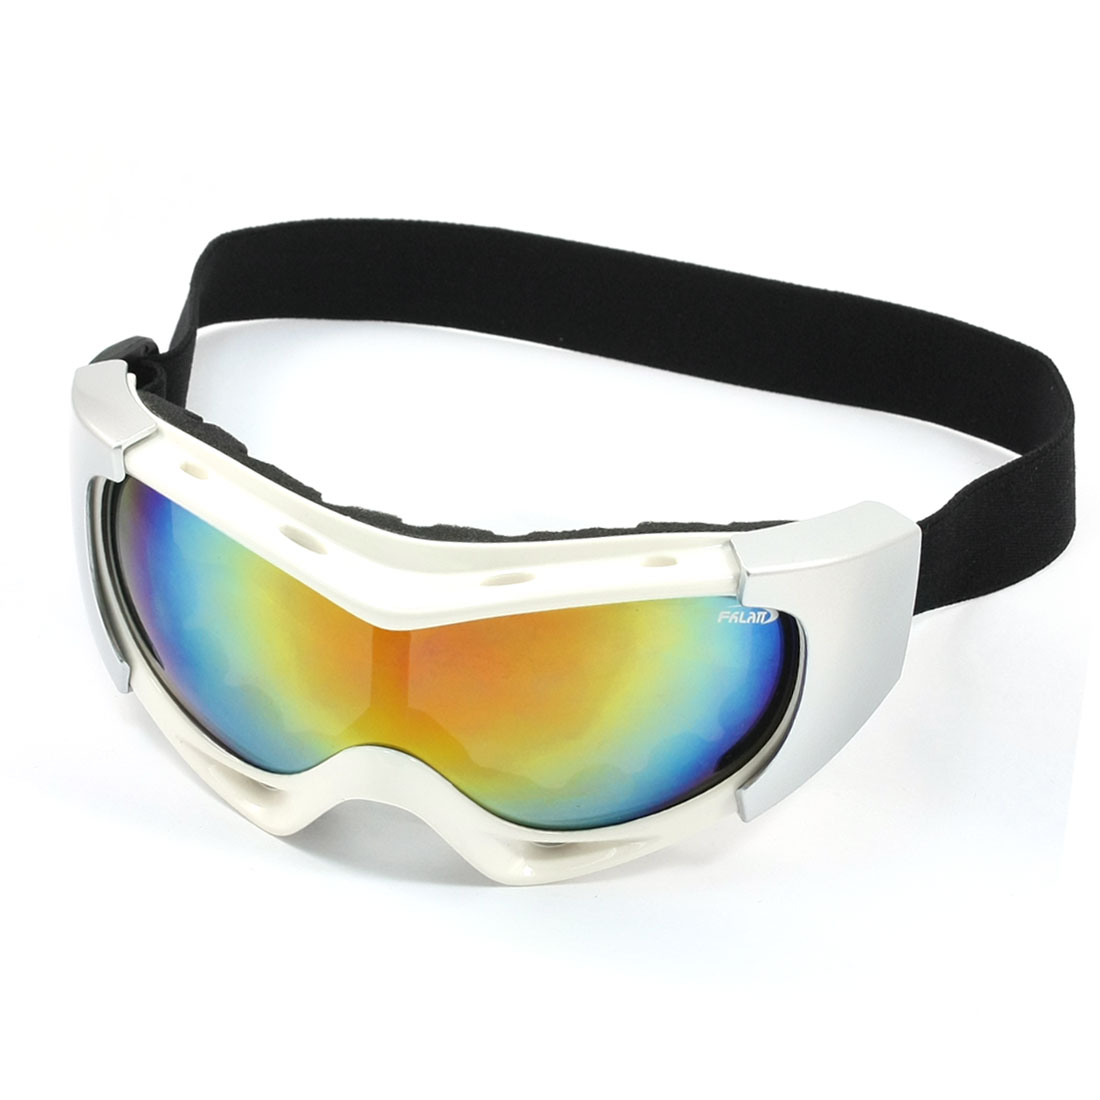 Mirrored Lens Full Frame Snow Ski Goggles Silver Tone White for Woman Man